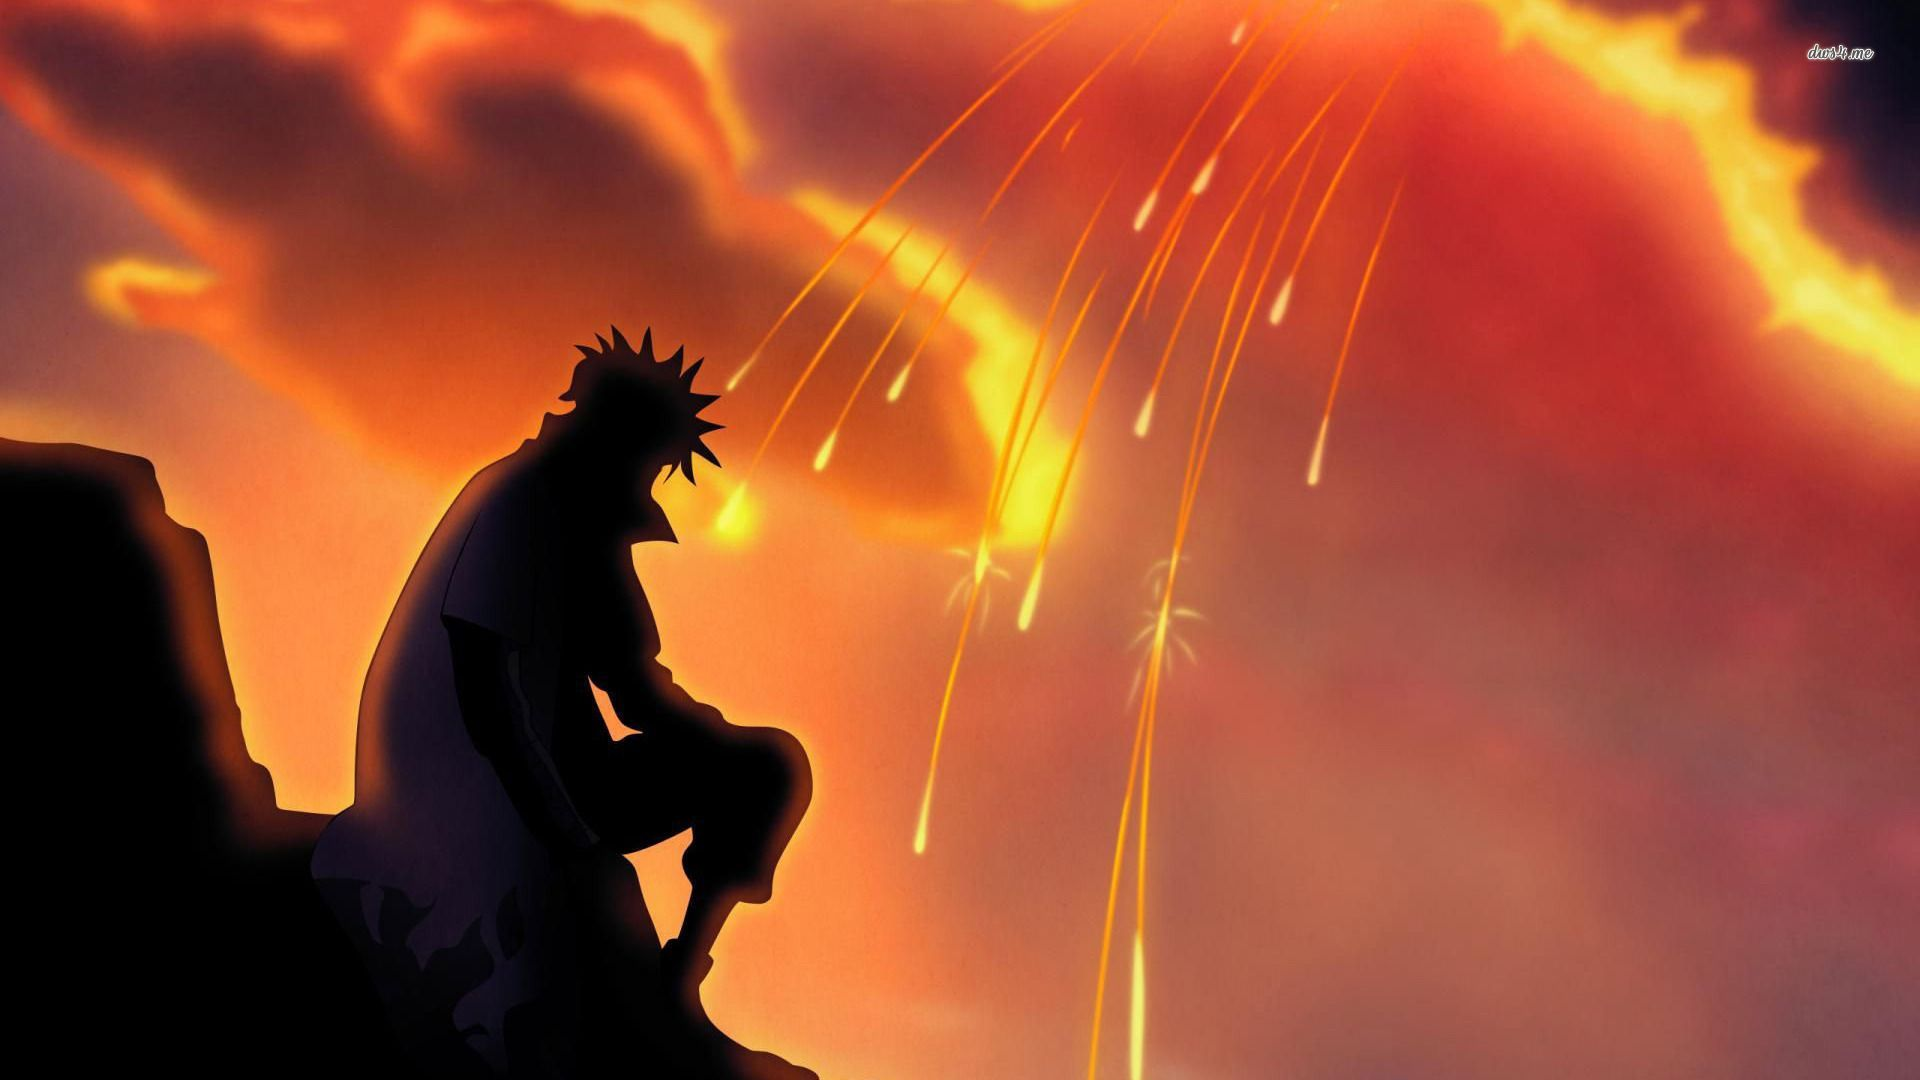 Naruto Hd Desktop Wallpaper Wallpaper Hd Naruto Wallpaper